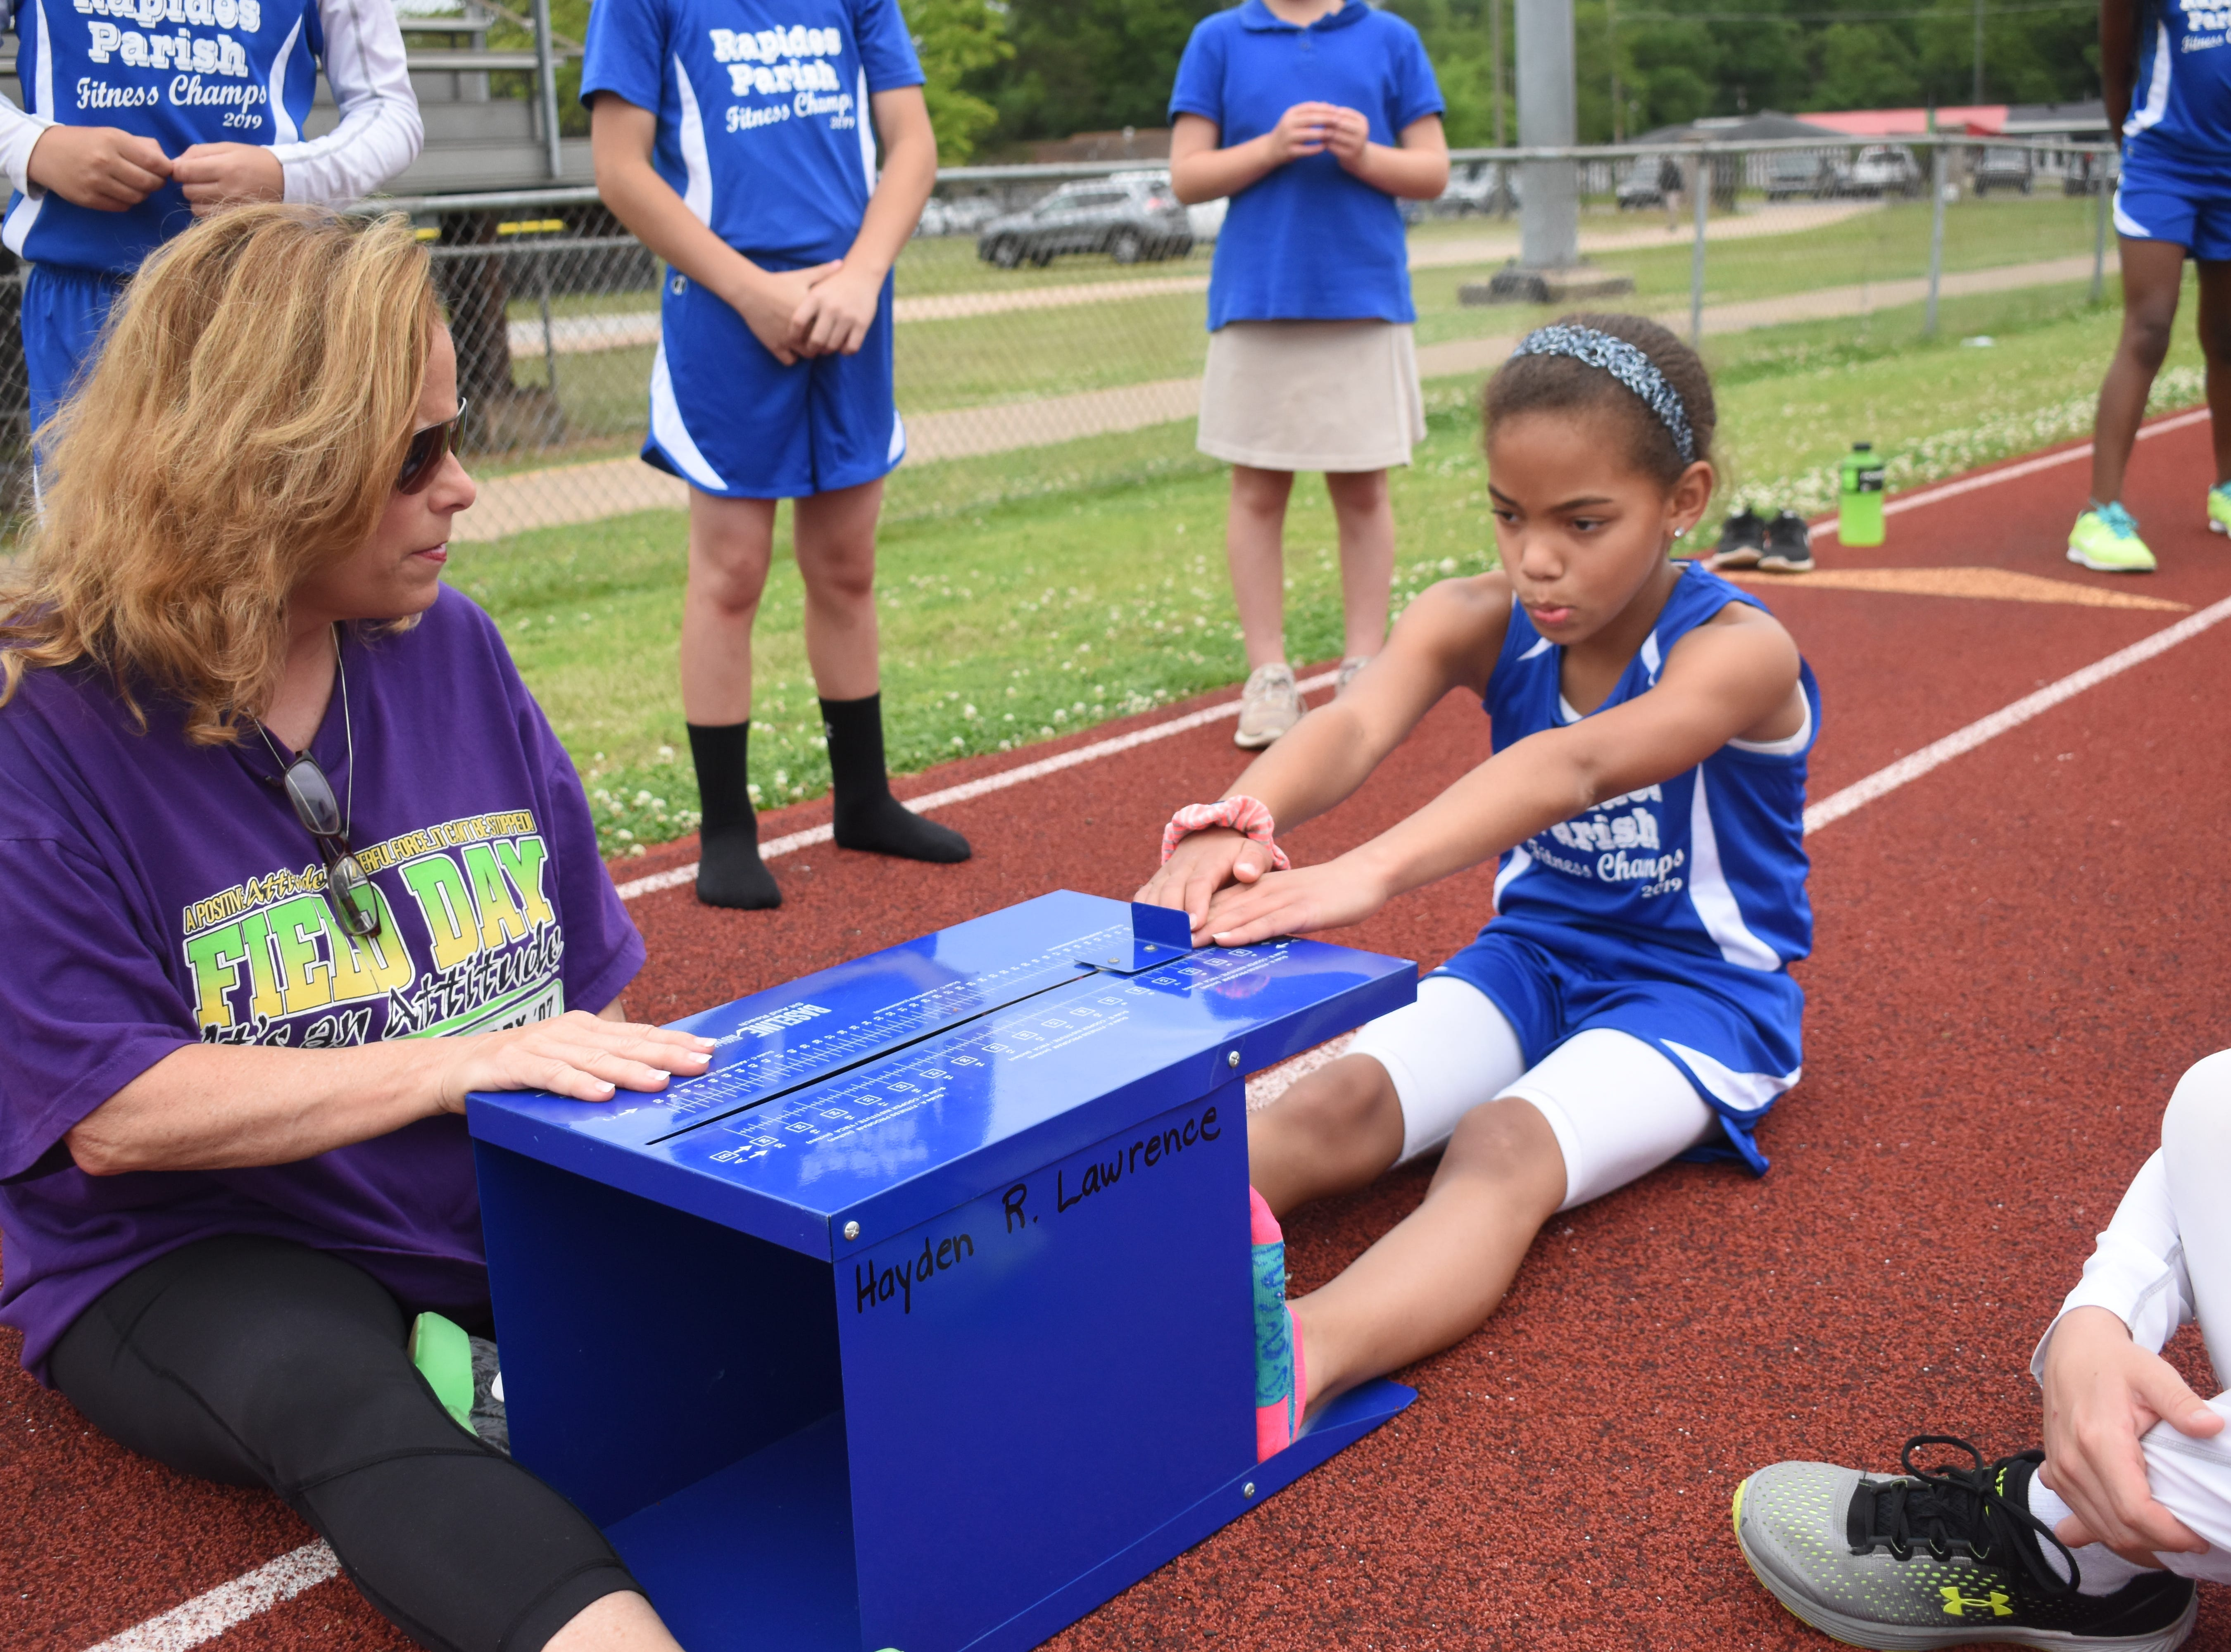 Margaret LaBorde, Rapides Parish Fitness team coach and coordinator (left) watches Madeline Davis of Nachman Elementary School complete a sit and reach. Madeline and other five other Rapides Parish elementary school students will compete in the 2019 State Championship Fitness Meet to be held Saturday, April 27, 2019 at Alexandria Senior High School. The meet is part of the Governor's Council on Fitness and Sports. Students from throughout Louisiana will compete in seven events: 50-yard dash, sit and reach, pull-ups,  shuttle run, curl-ups (sit-ups), standing long jump, and the 600-yard run. For the past three years, the Rapides Parish Fitness Team has placed first at the meet. Dean was the highest scoring boy last year and won the title of 2018 Mr. Fitness for the State of Louisiana. The meet will be from 10 a.m. to 2 p.m.